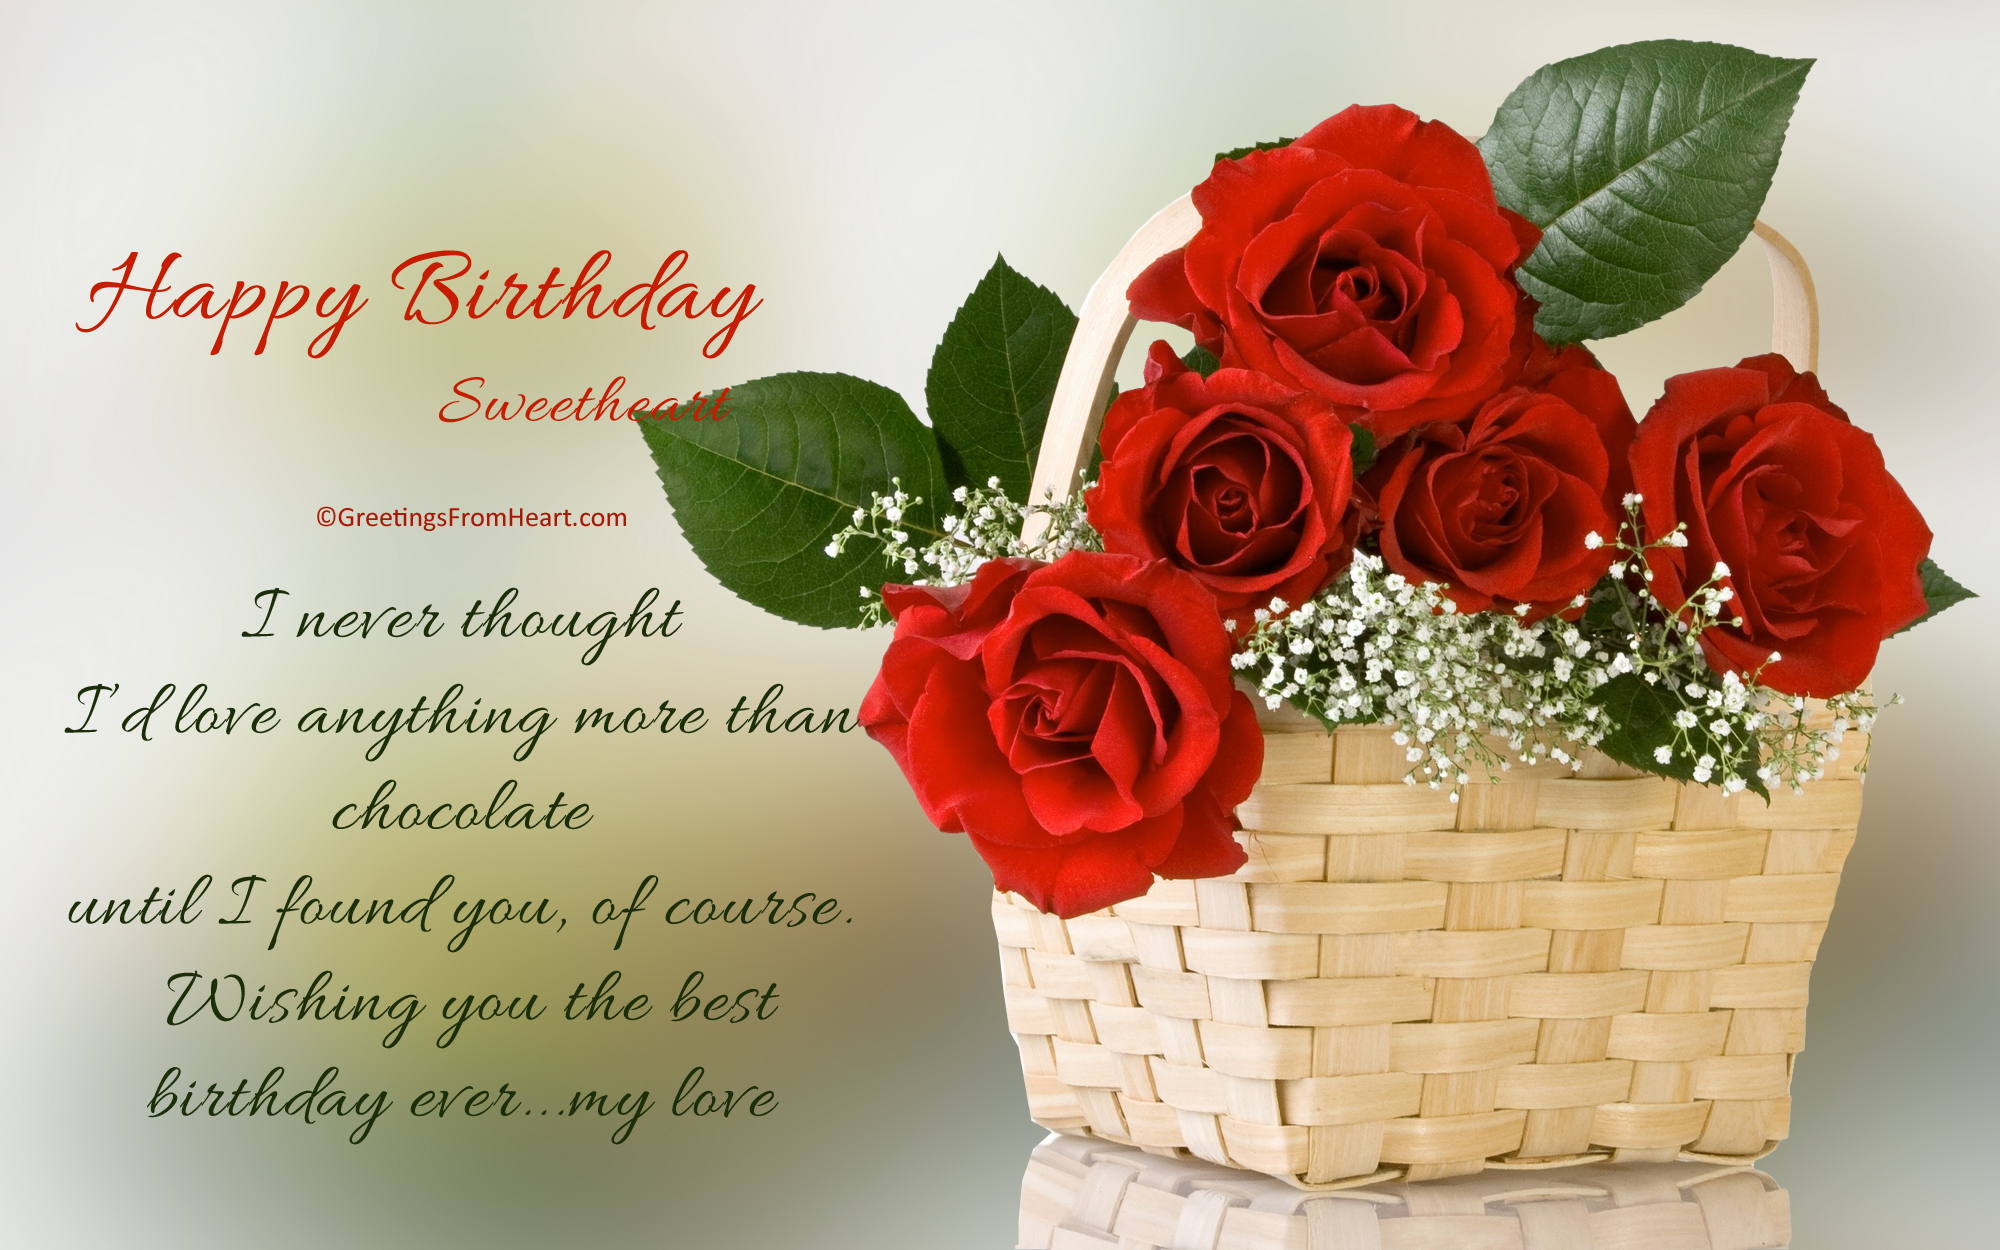 birthday greeting pictures for lover ; happy-birthday-greetings-for-lover-7